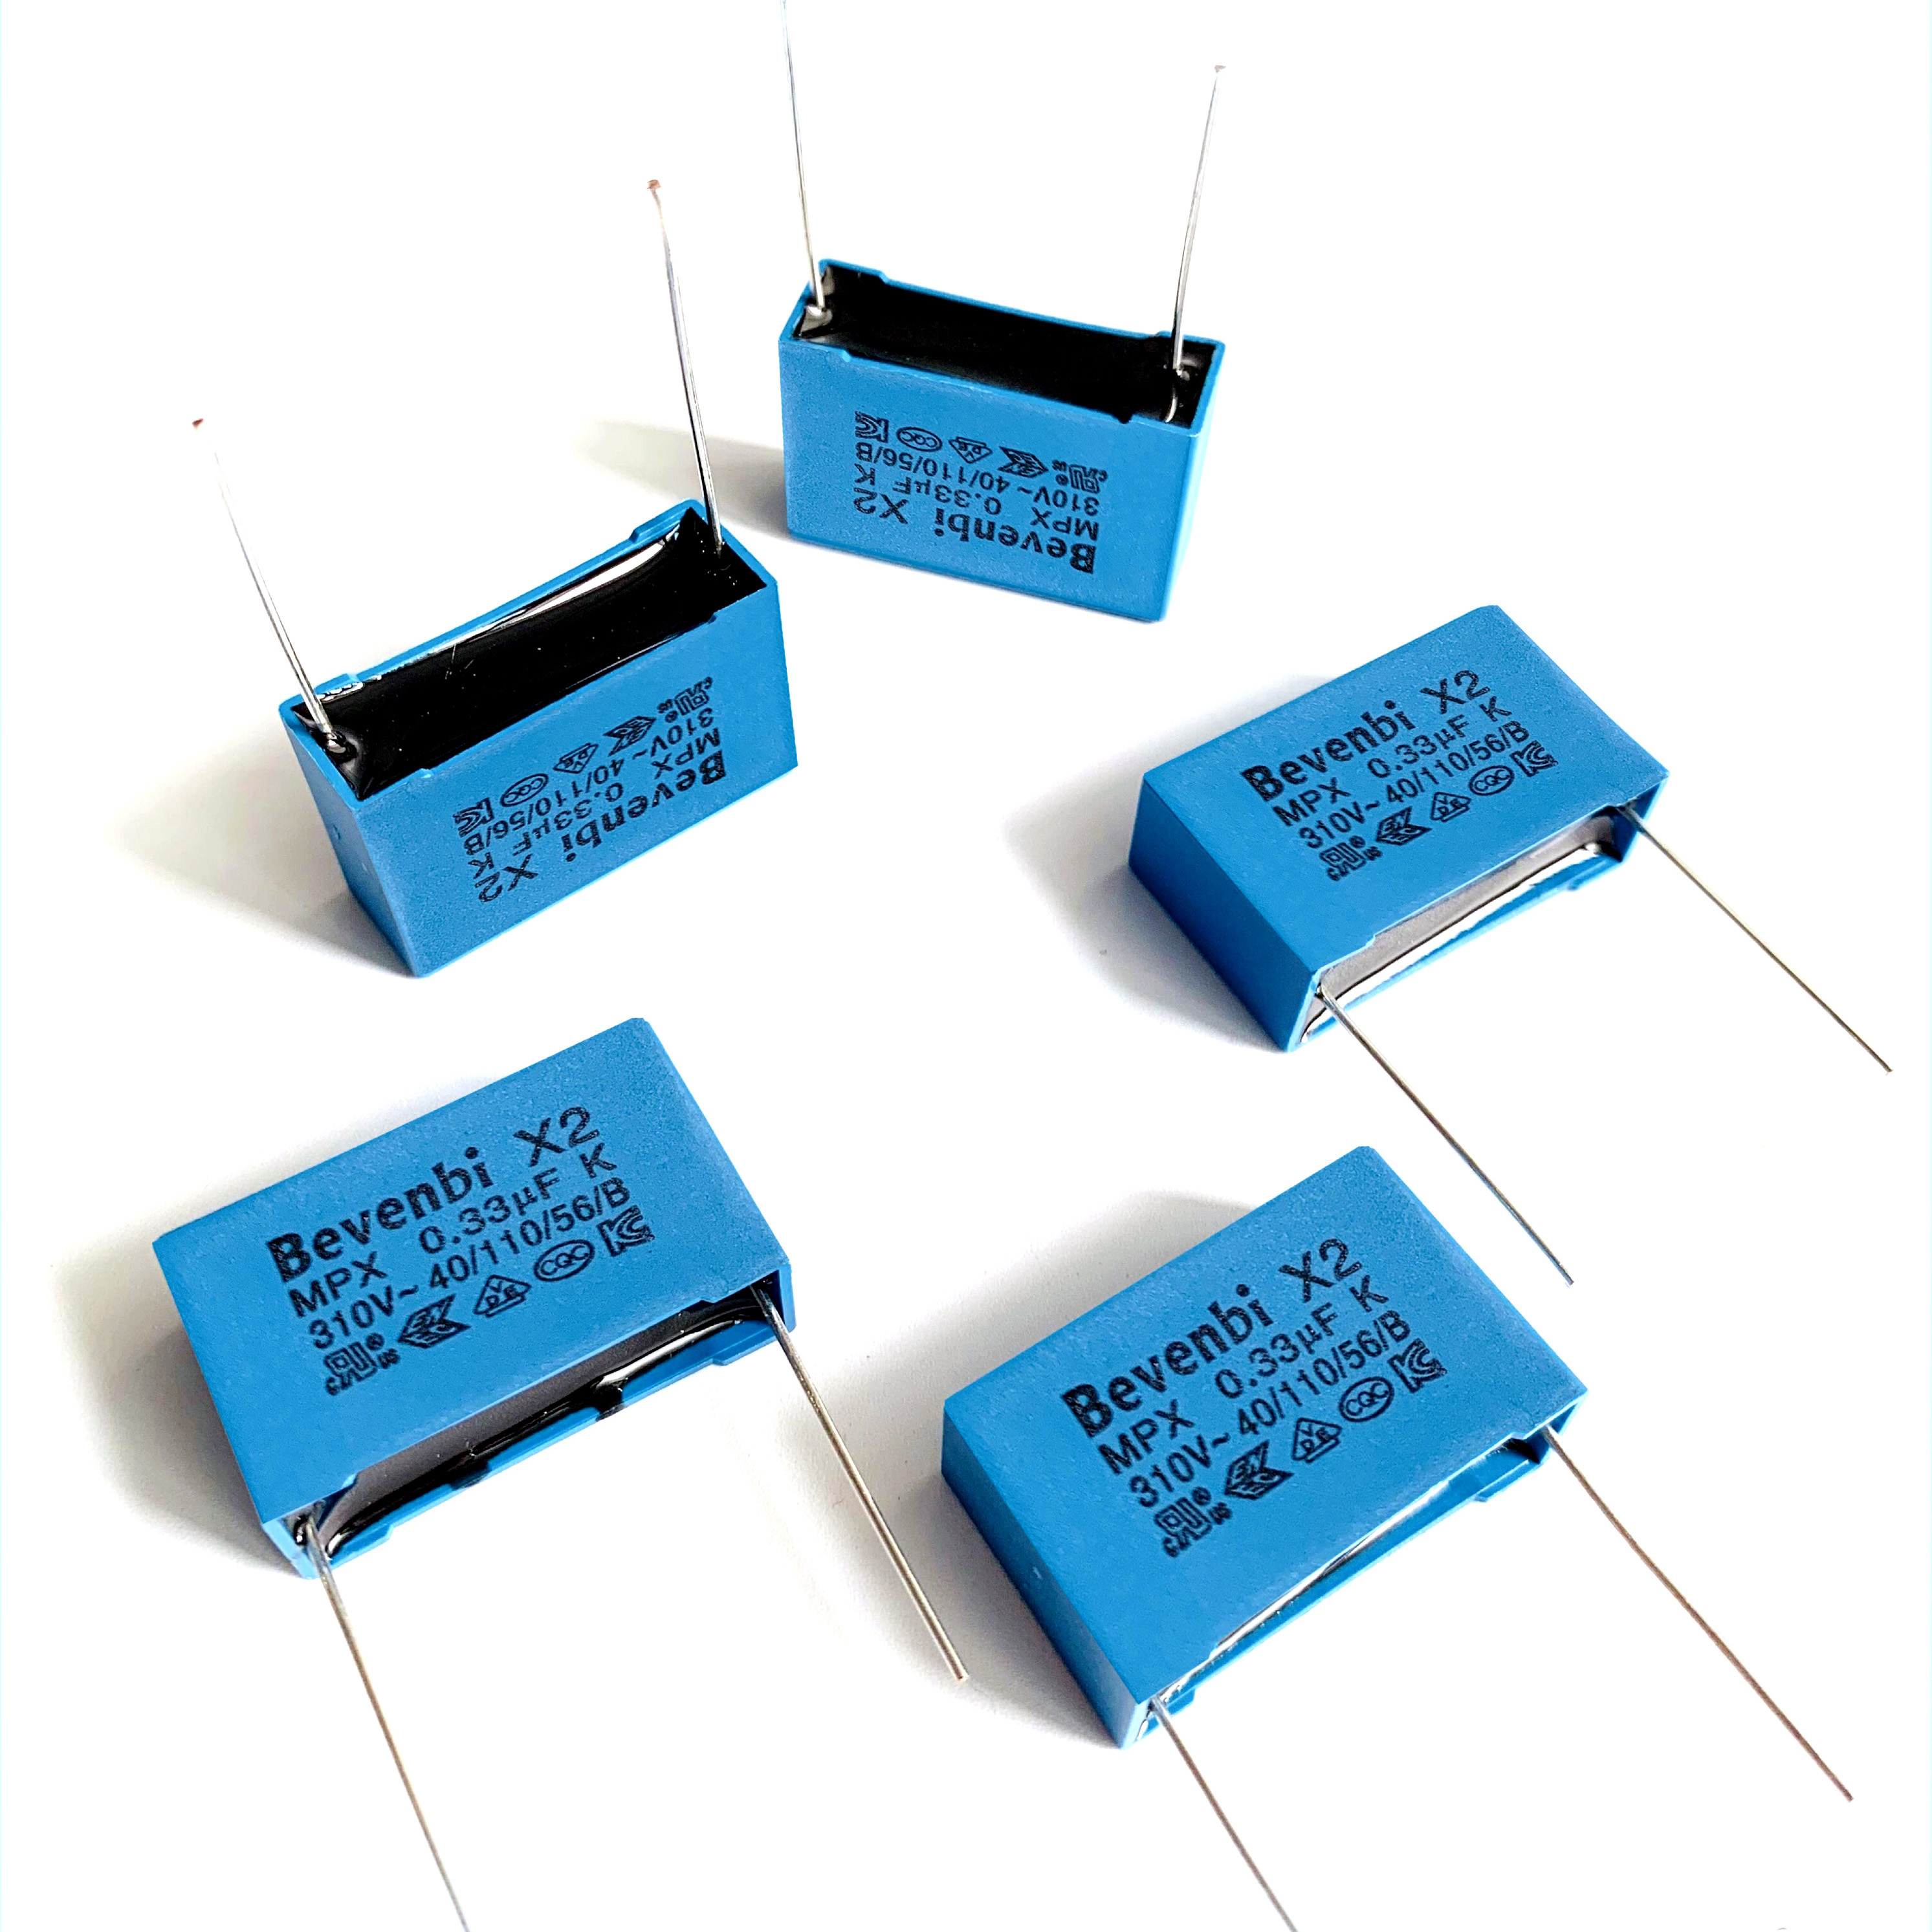 2019 Good Quality Metallized Polypropylene Film Capacitor -